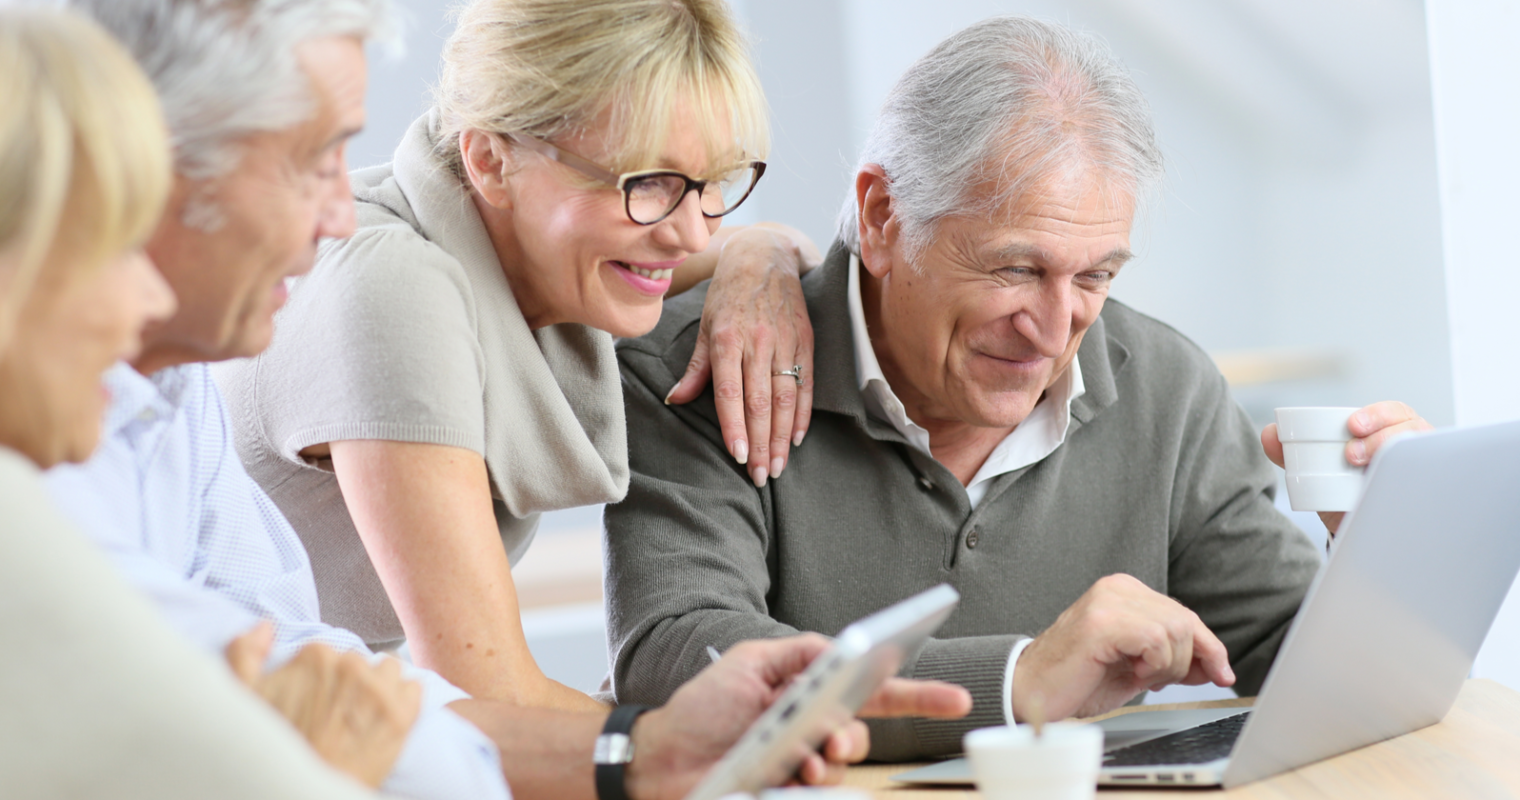 5 Practical Ways to Effectively Target Seniors in Digital Marketing